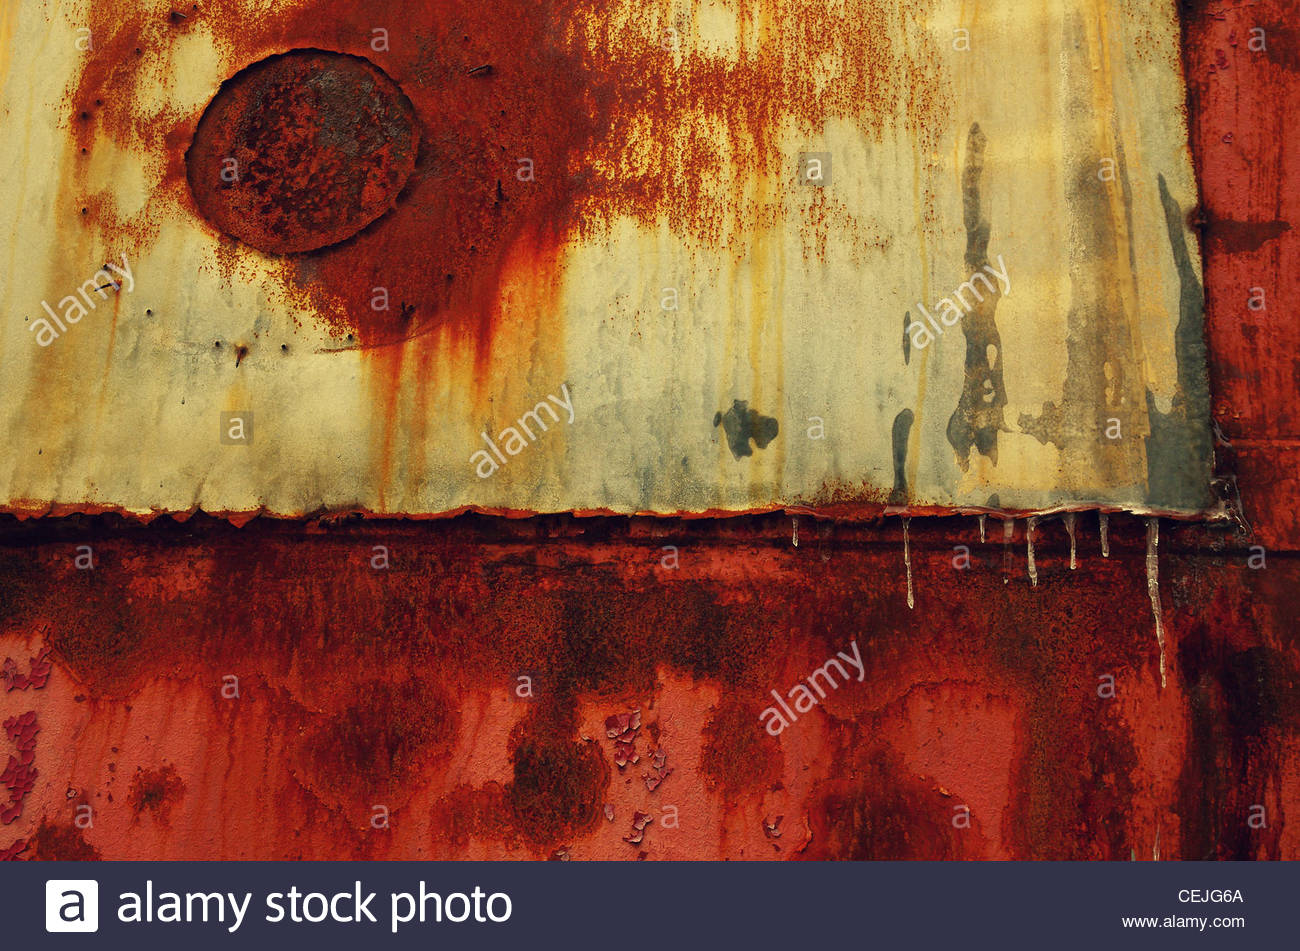 Detail of a Rusty Wagon - Stock Image